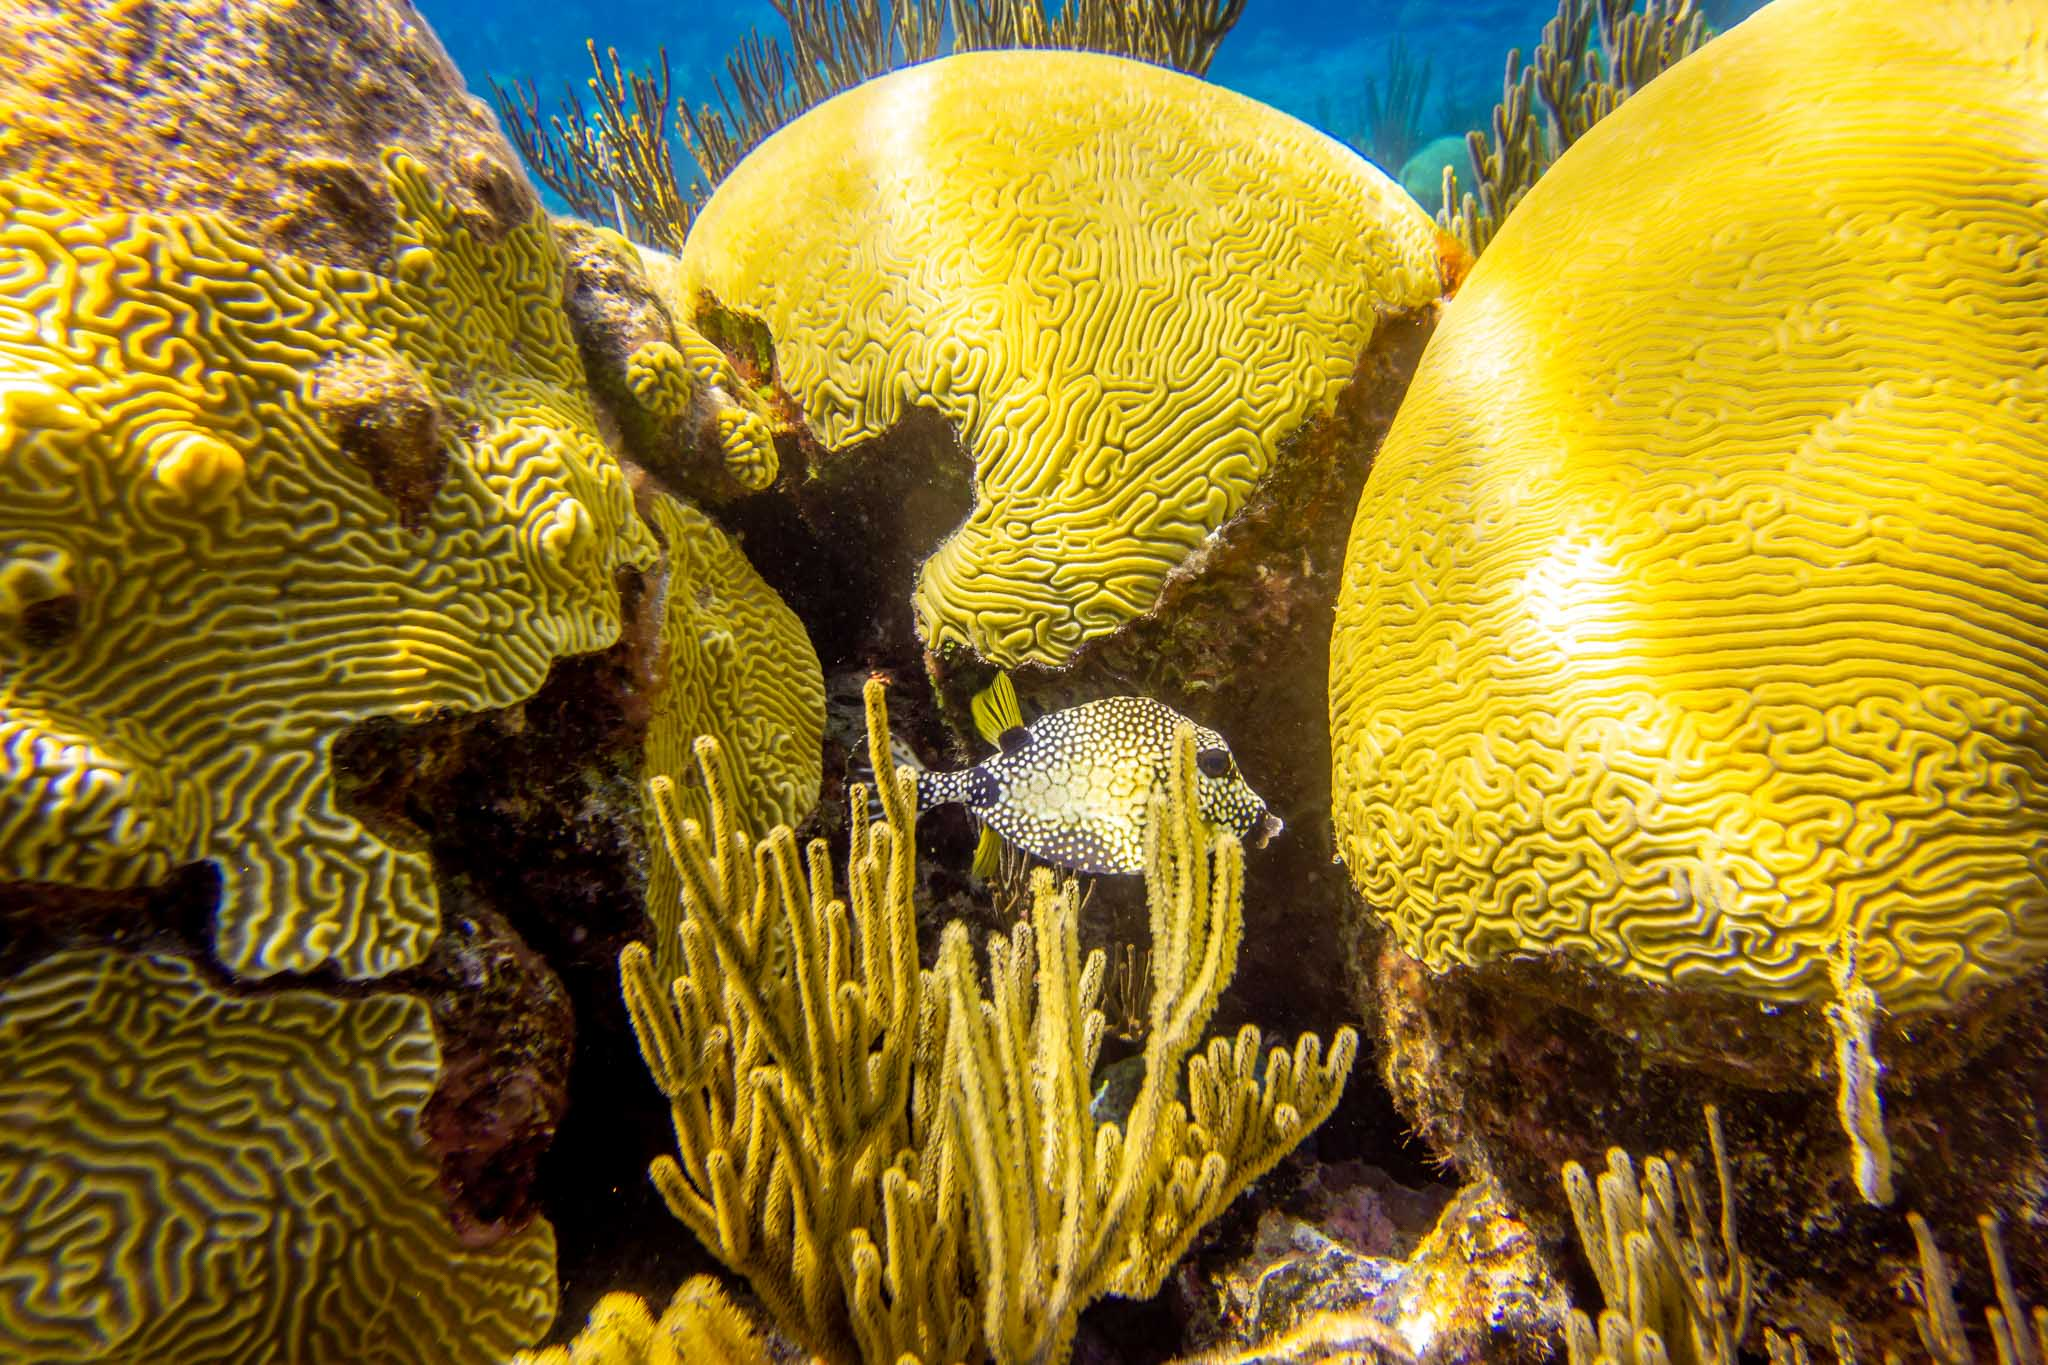 Fish swimming by yellow brain coral